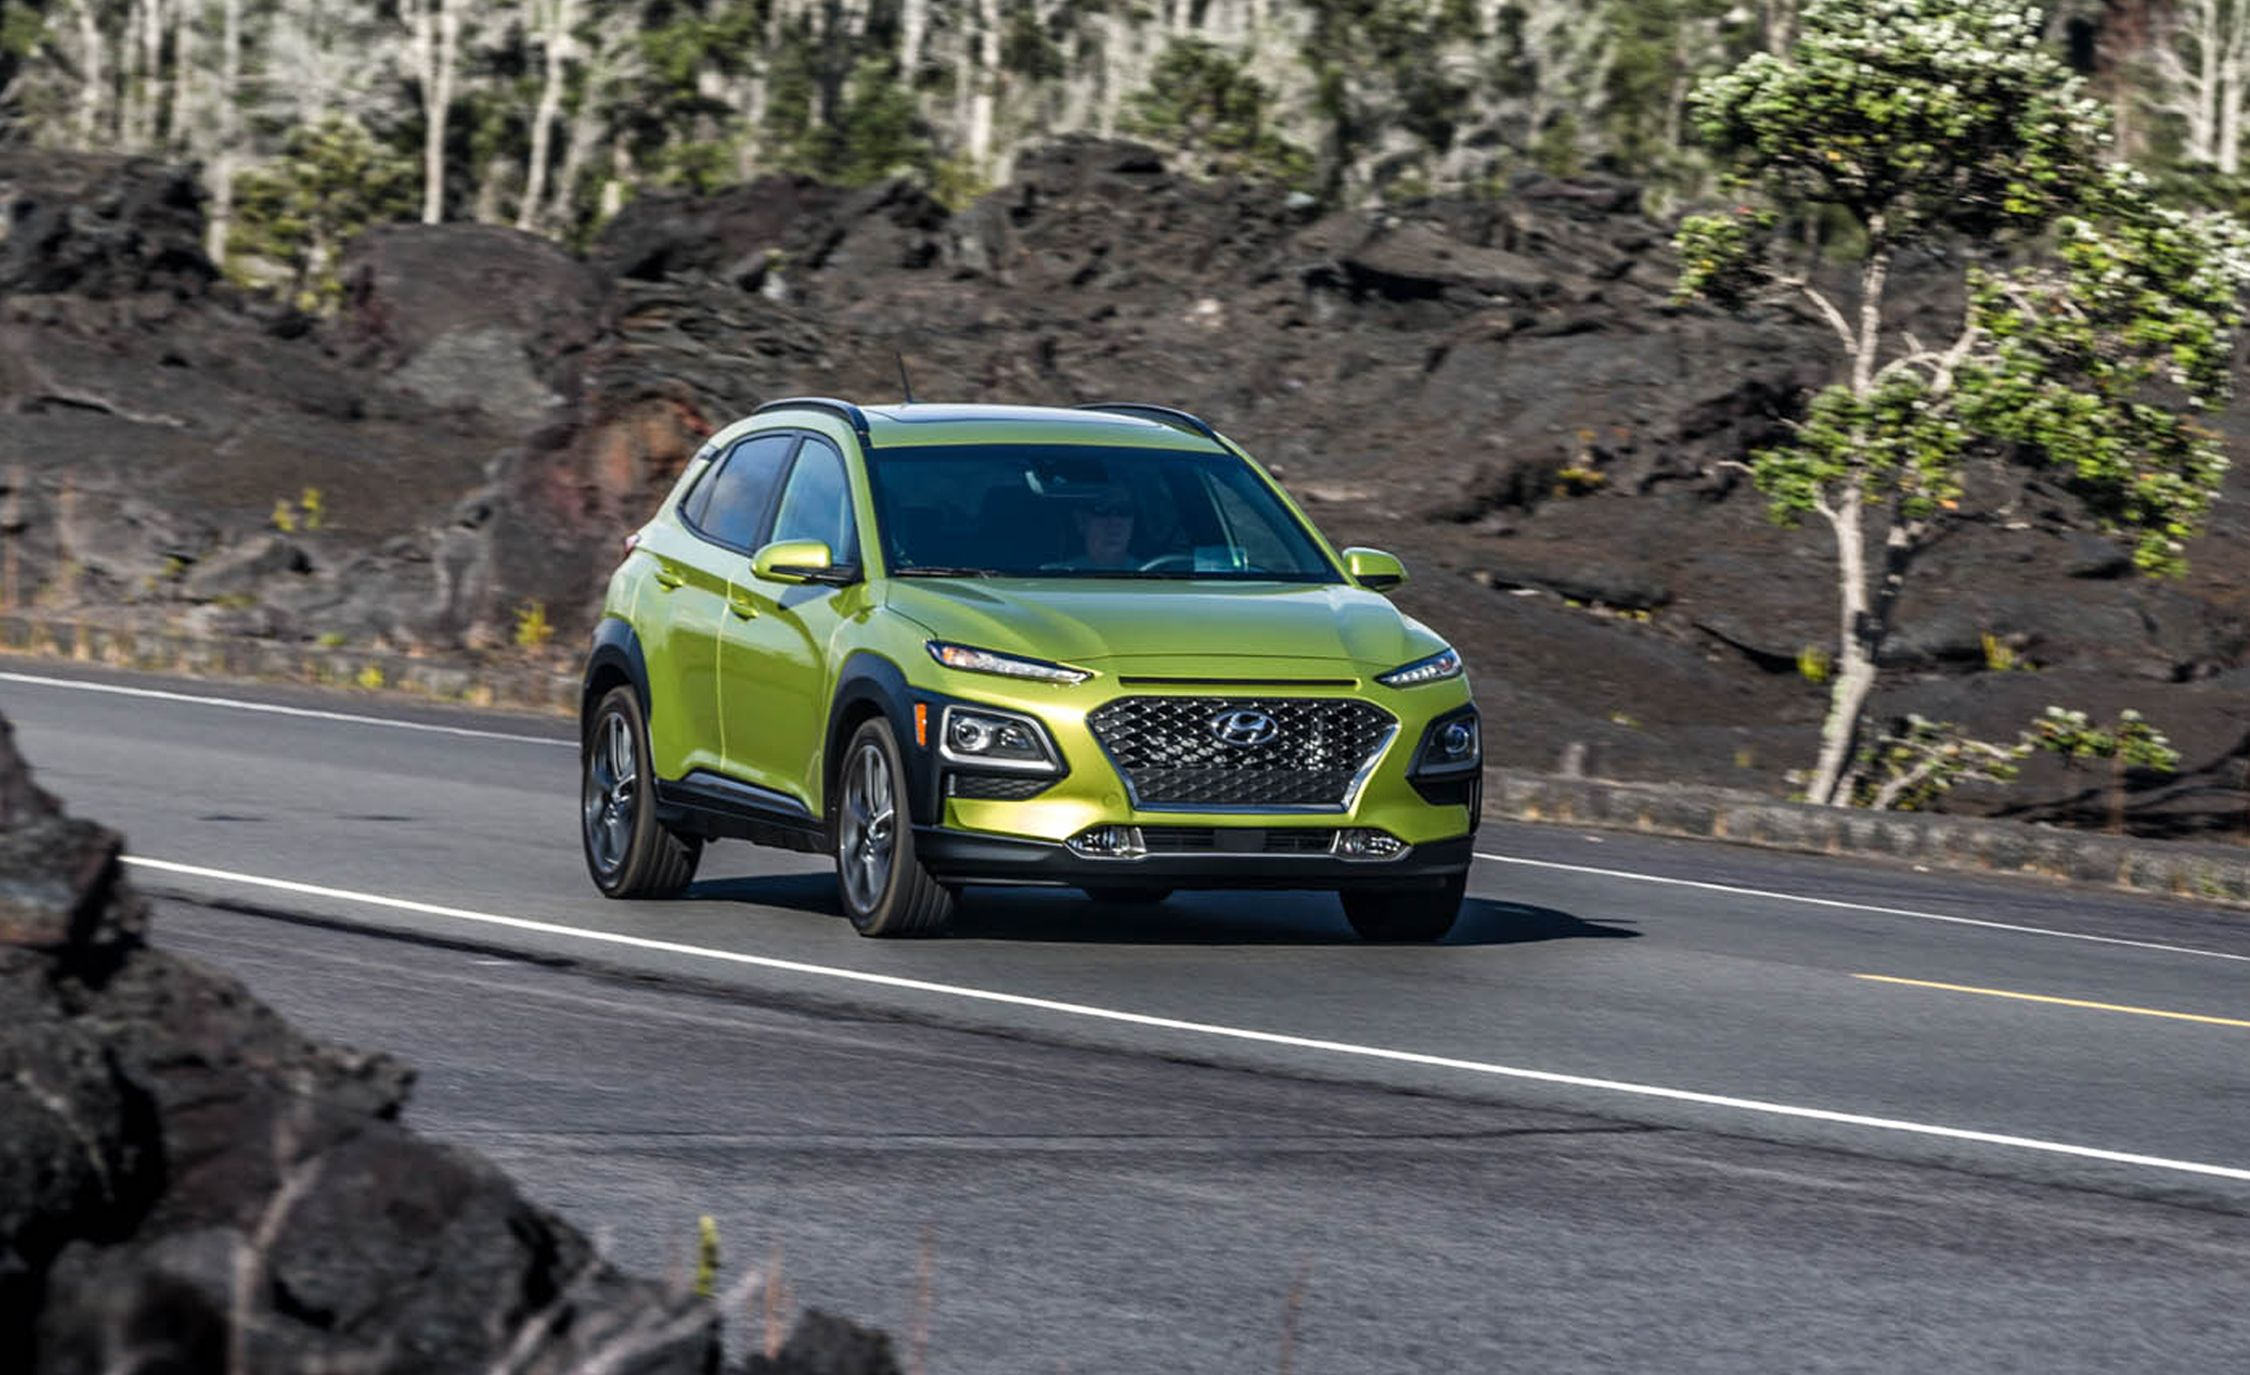 2018 Hyundai Kona: The Bean Counters Will Love This Brew